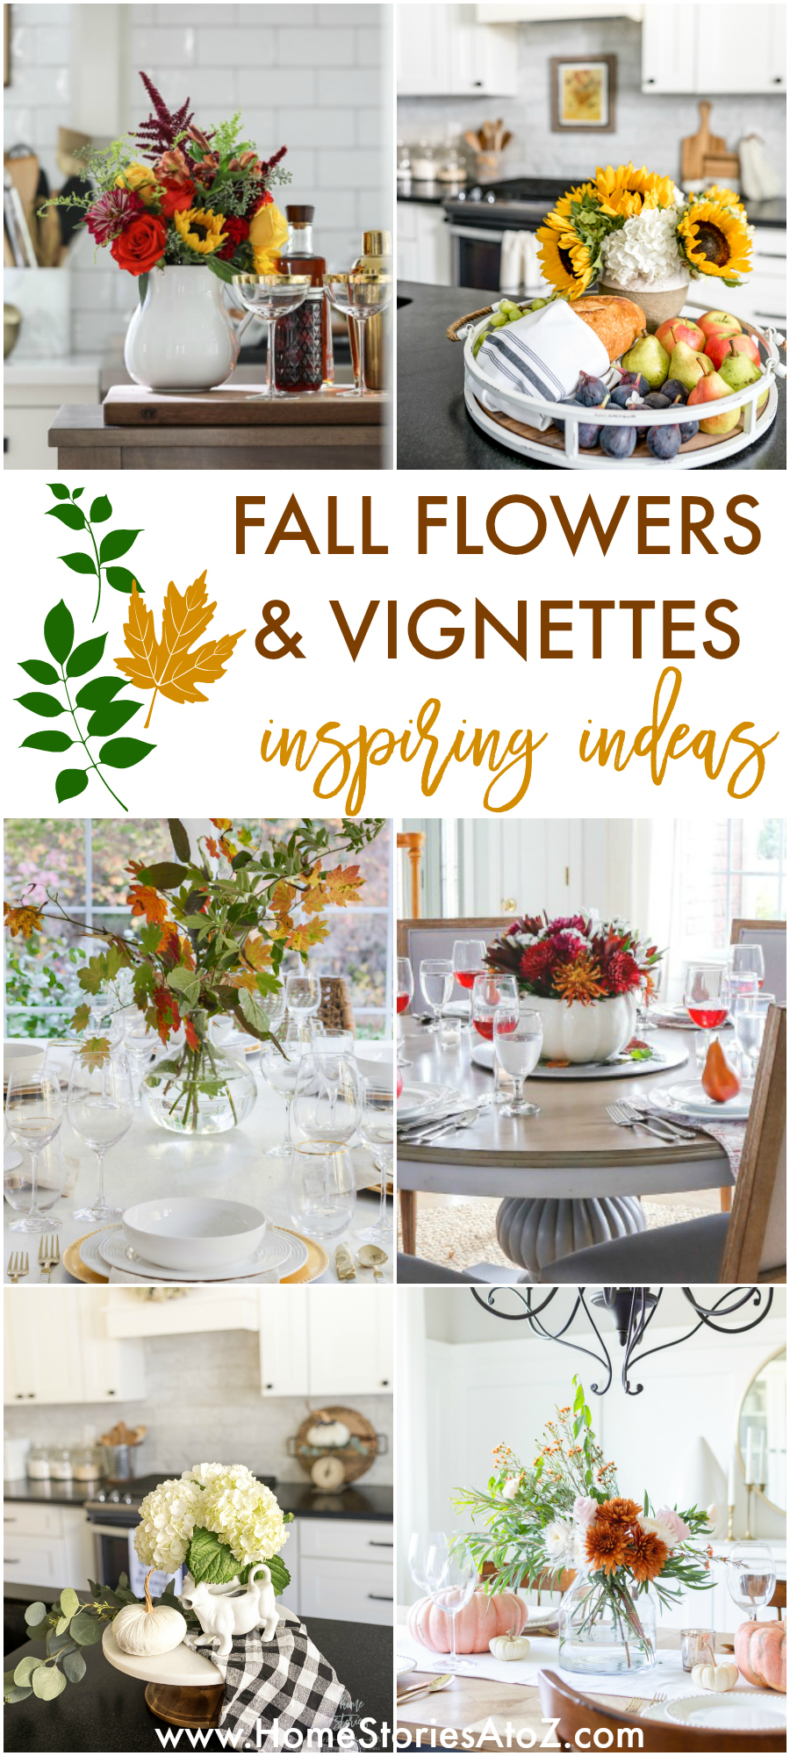 Fall Flowers and Vignettes - Inspiring Ideas for your home